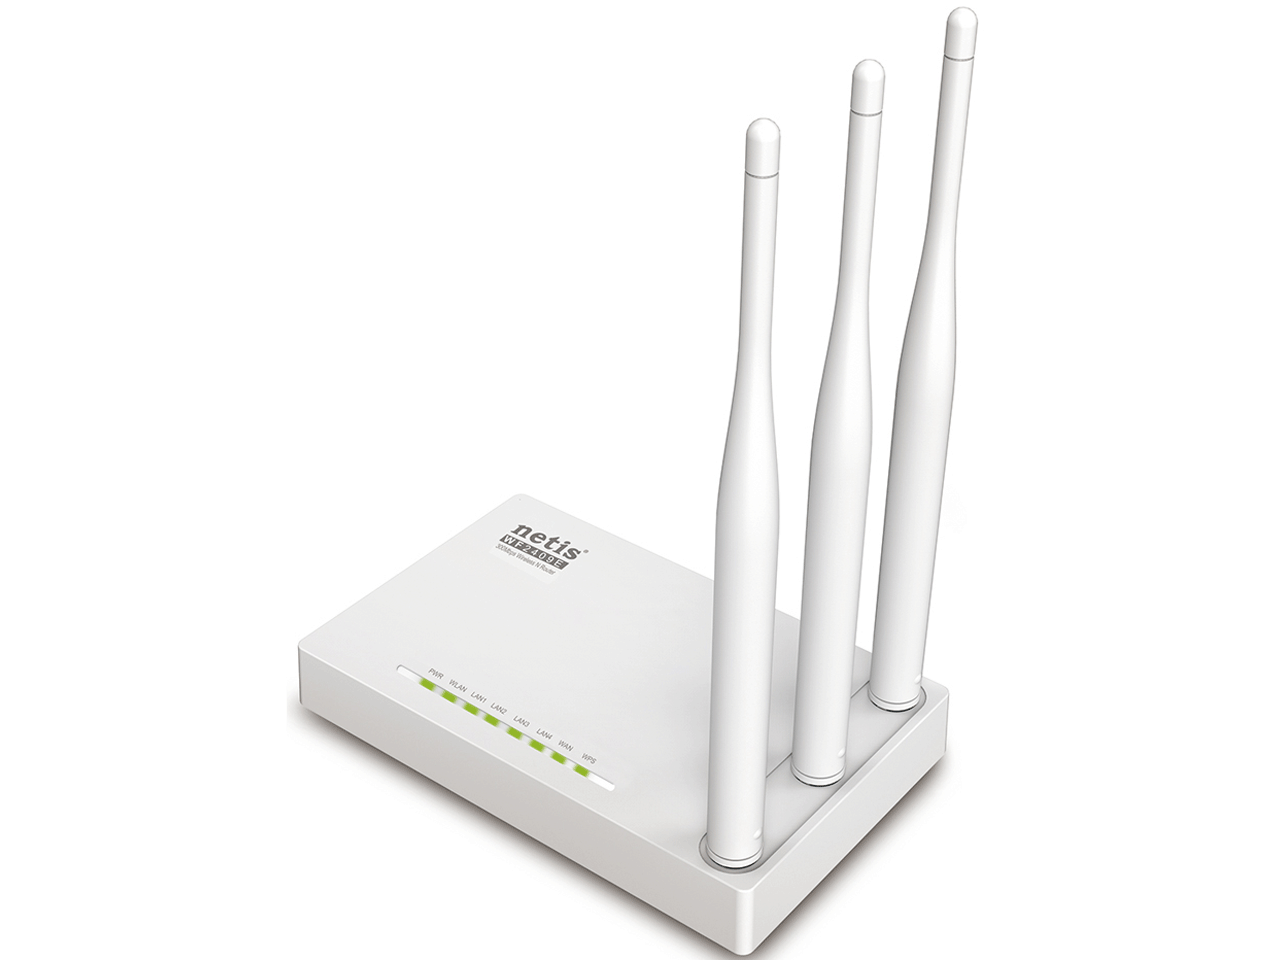 NETİS WF2409E 300MBPS WİRELESS N ROUTER, 3*5dBi EXTERNAL FİXED ANTENNAS, IPTV FUNCTİON AND FULL DUAL ACCESS SUPPORT